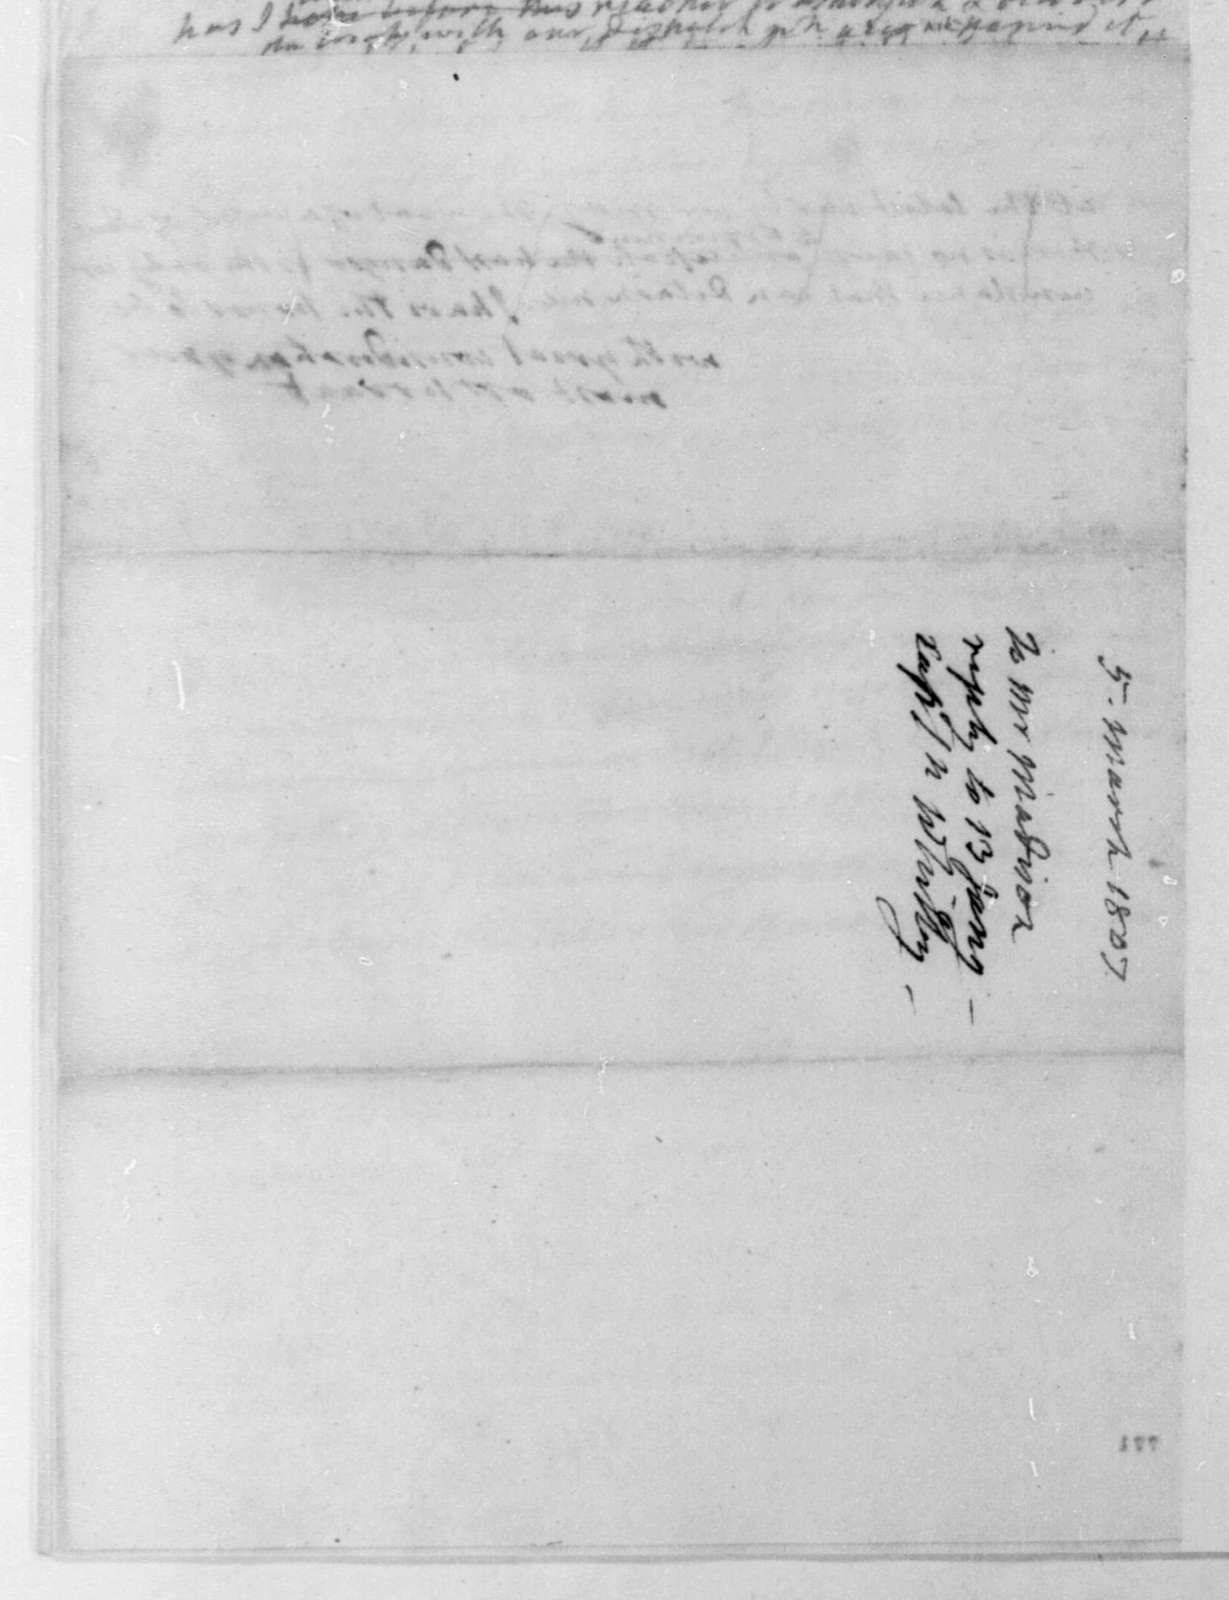 James Monroe to James Madison, March 5, 1807.